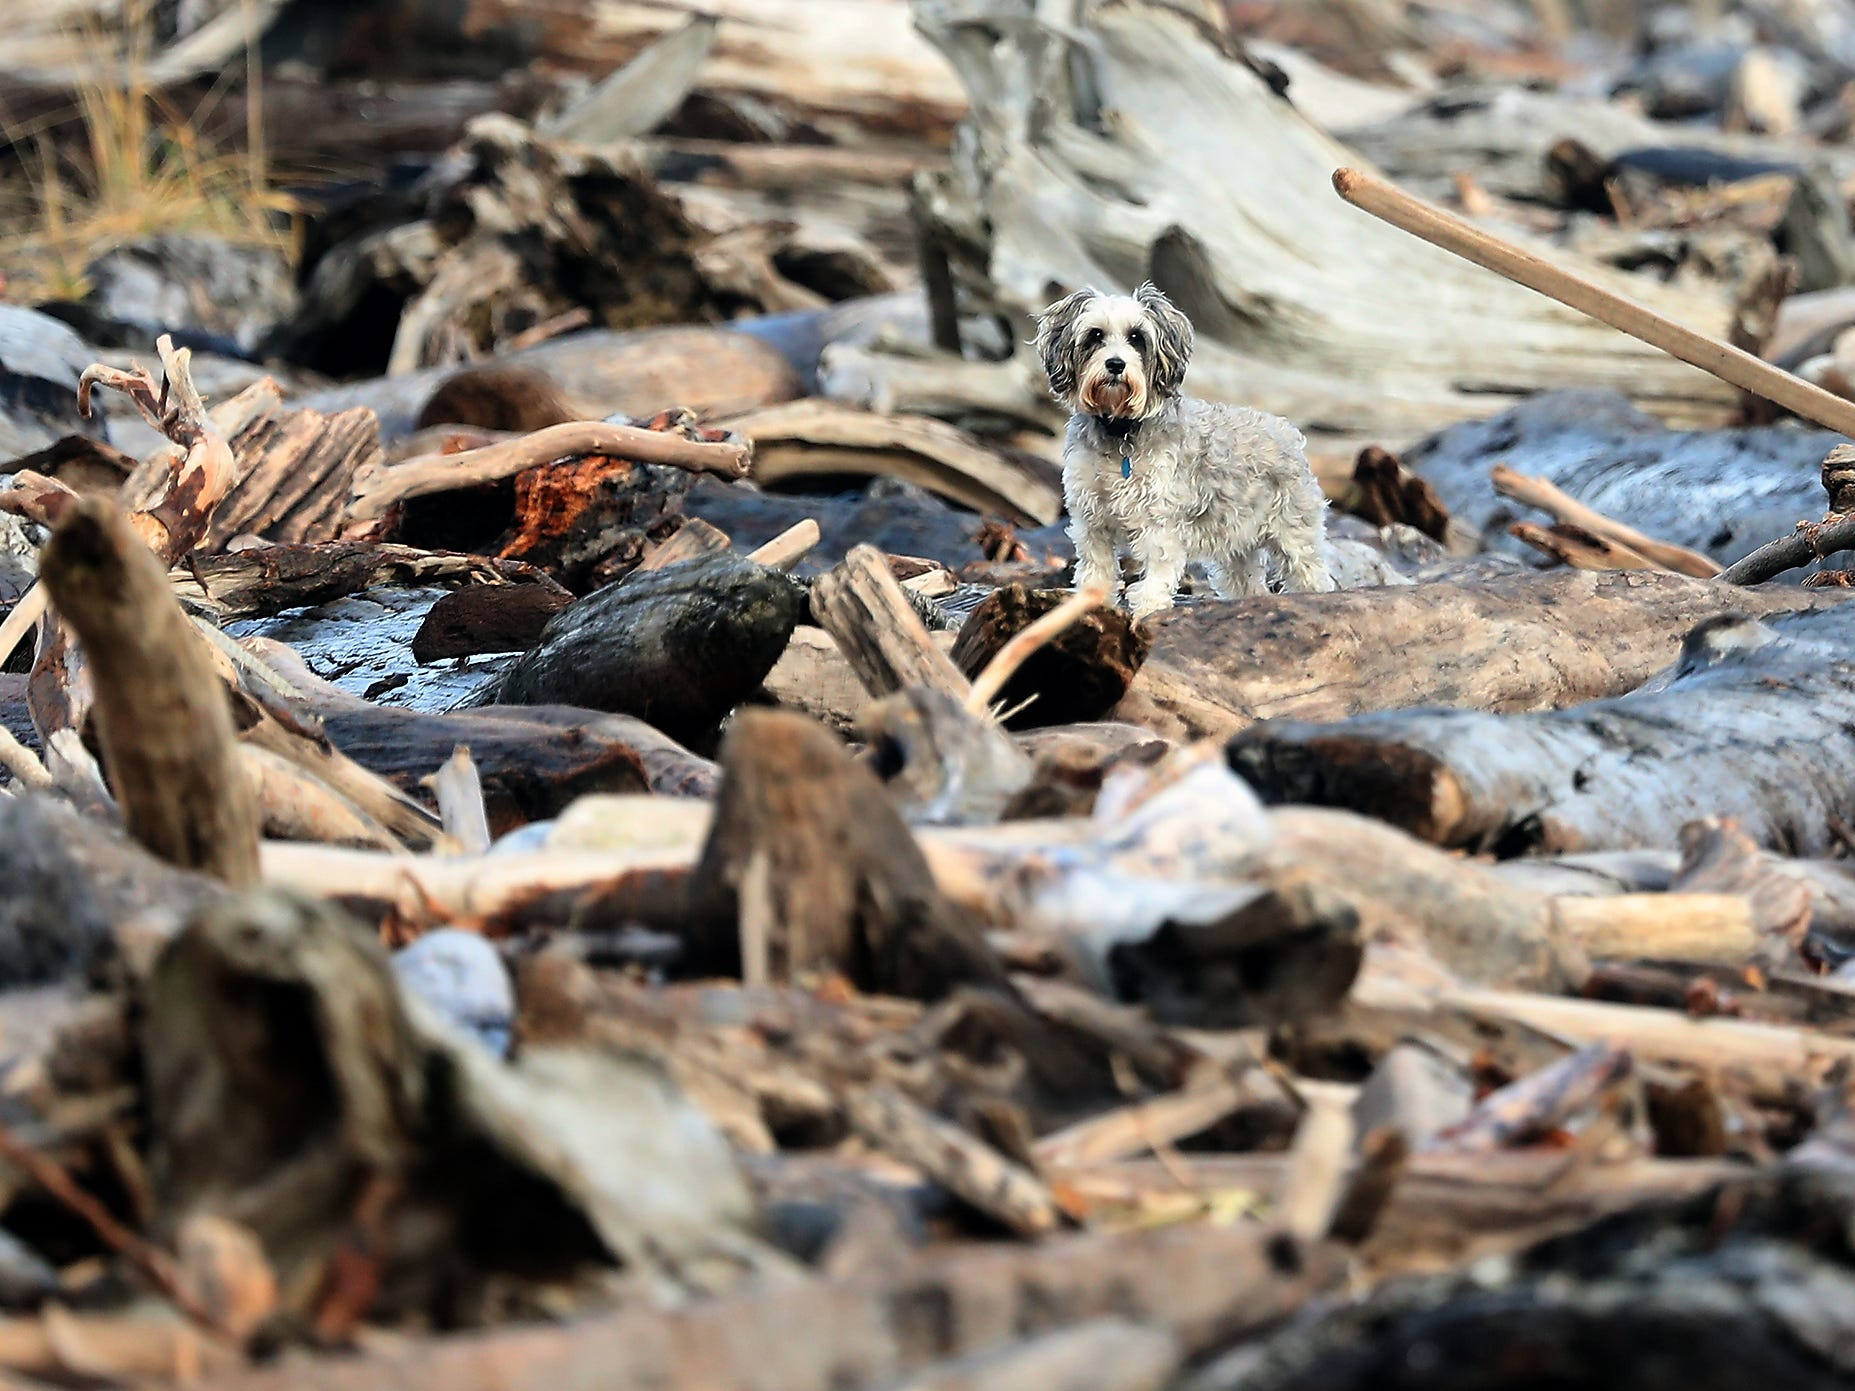 A dog blends in with all the driftwood strewn about the beach at Point No Point in Hansville on Sunday, December 30, 2018.